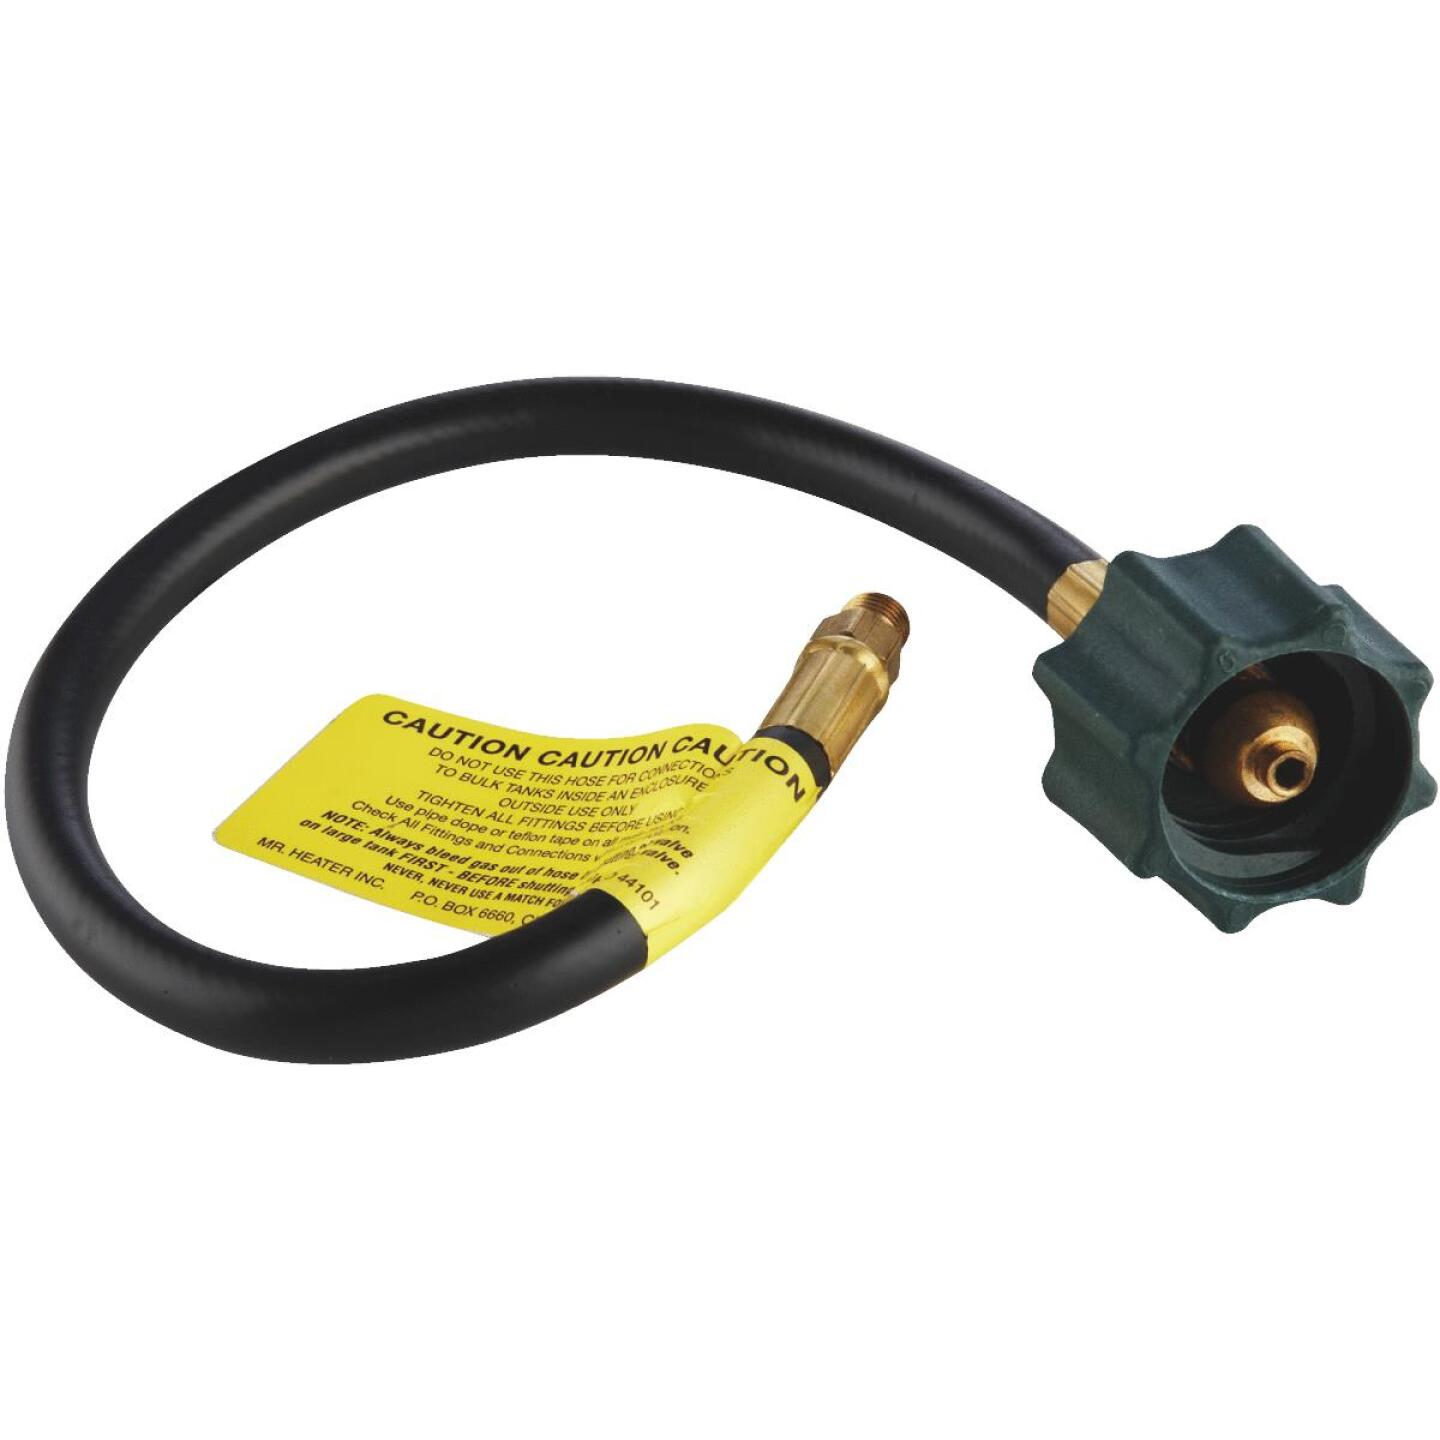 MR. HEATER 18 In. x 1/4 In. Inverted Male Flare x 3/8 In. Acme Nut LP Hose Assembly Image 1